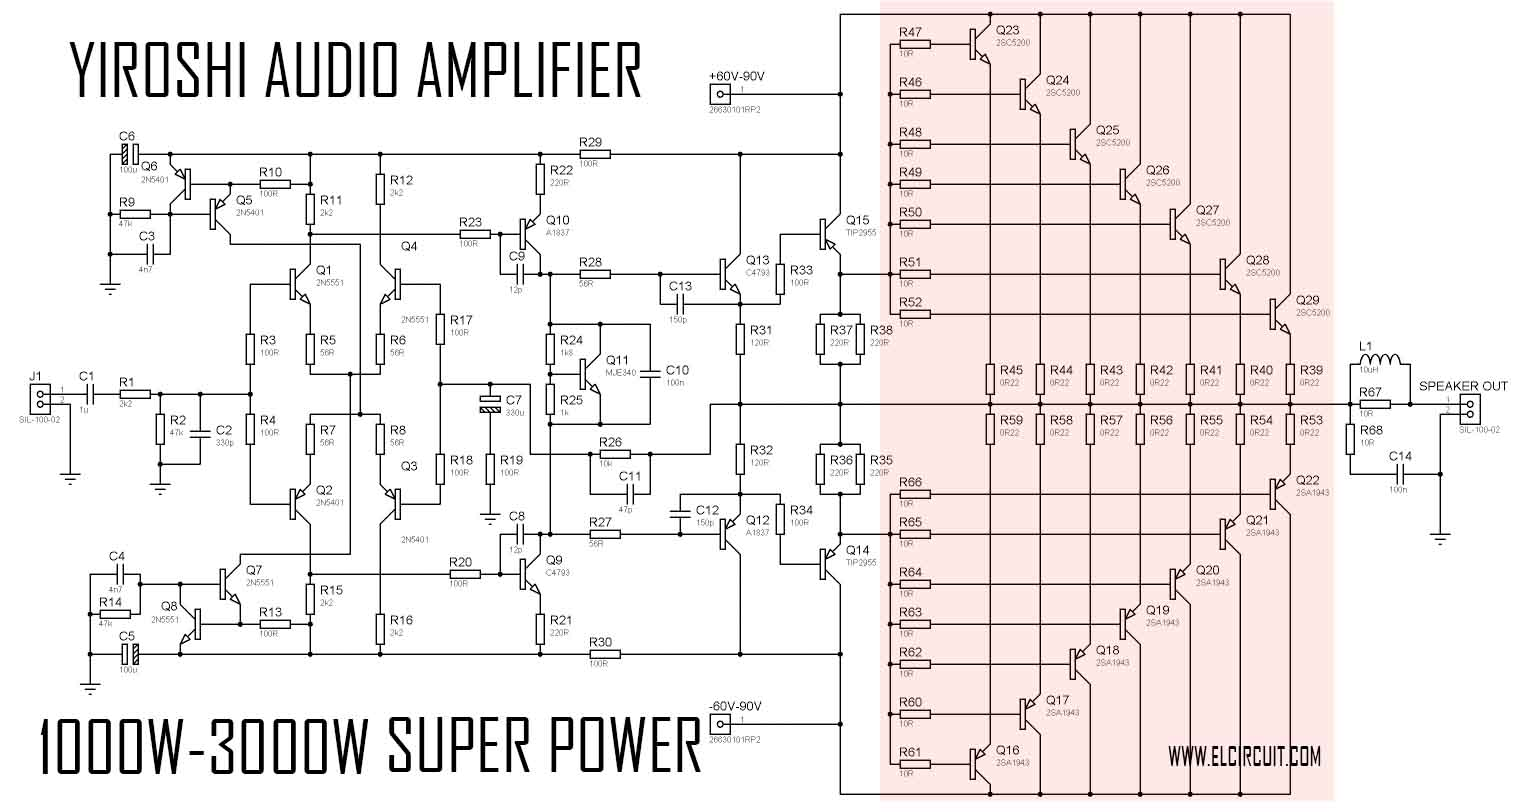 small resolution of super power amplifier yiroshi audio 1000 watt